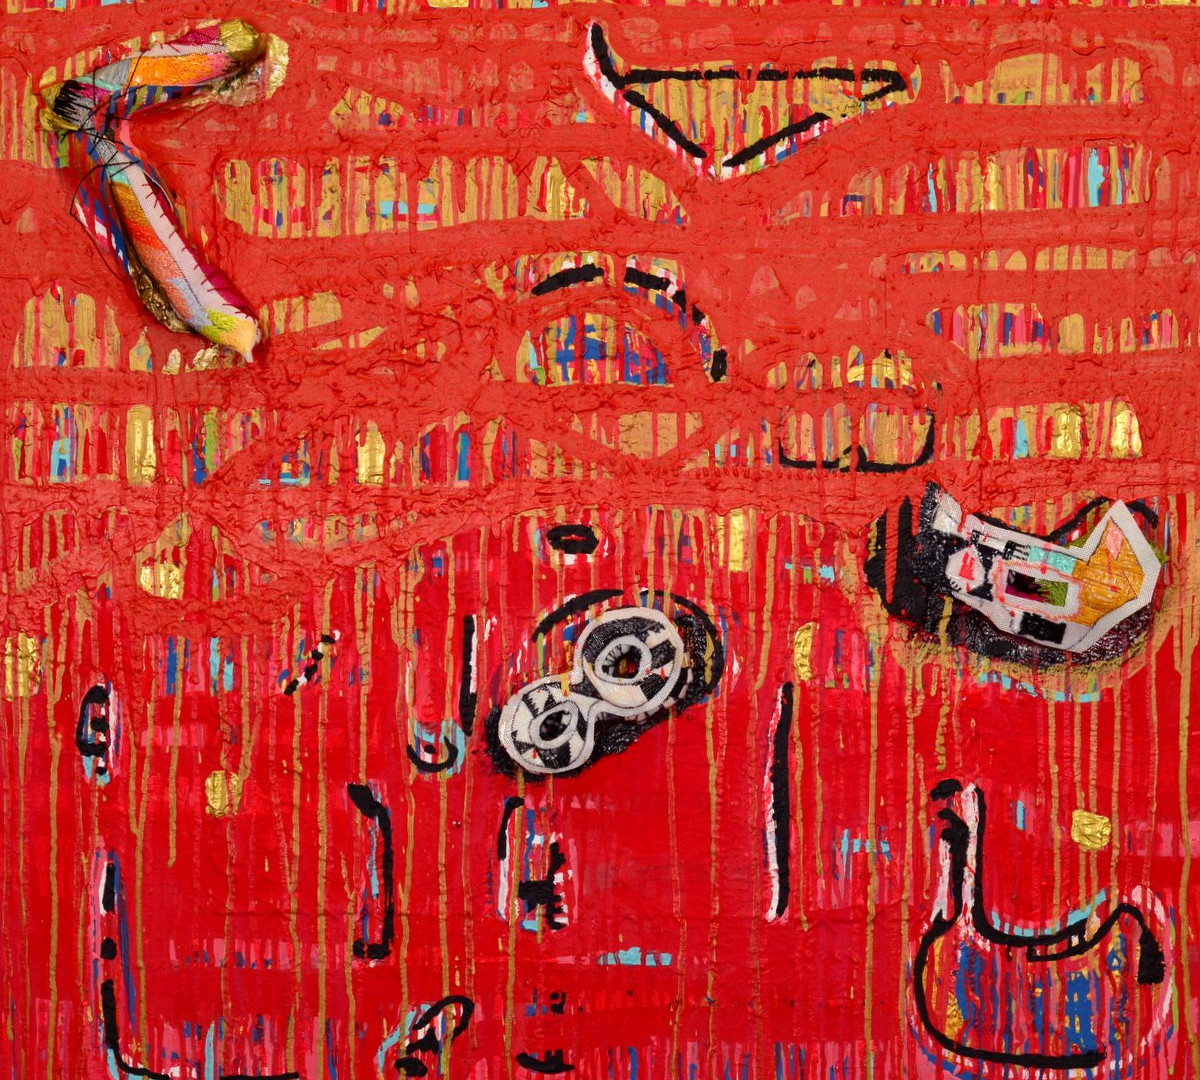 Carter_Andree_Hush Hush Red_acrylic, oil, needlepoint on canvas_2.jpg